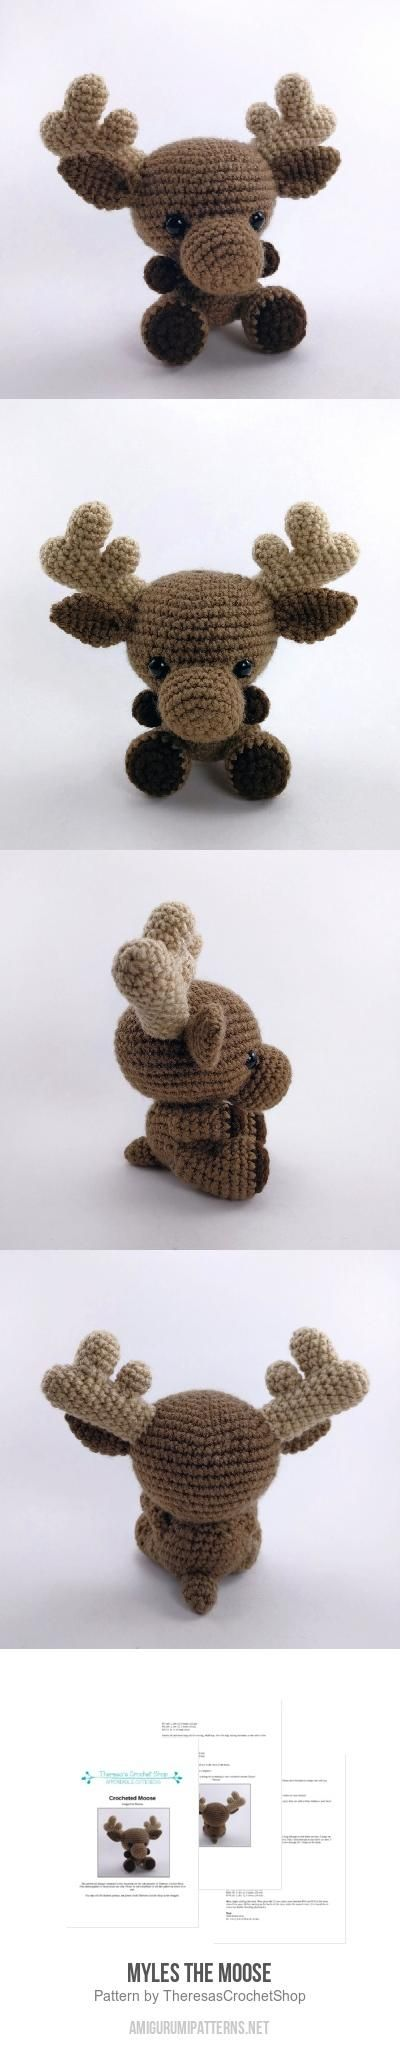 Myles The Moose Amigurumi Pattern | Yarn Party | Pinterest | Molde ...